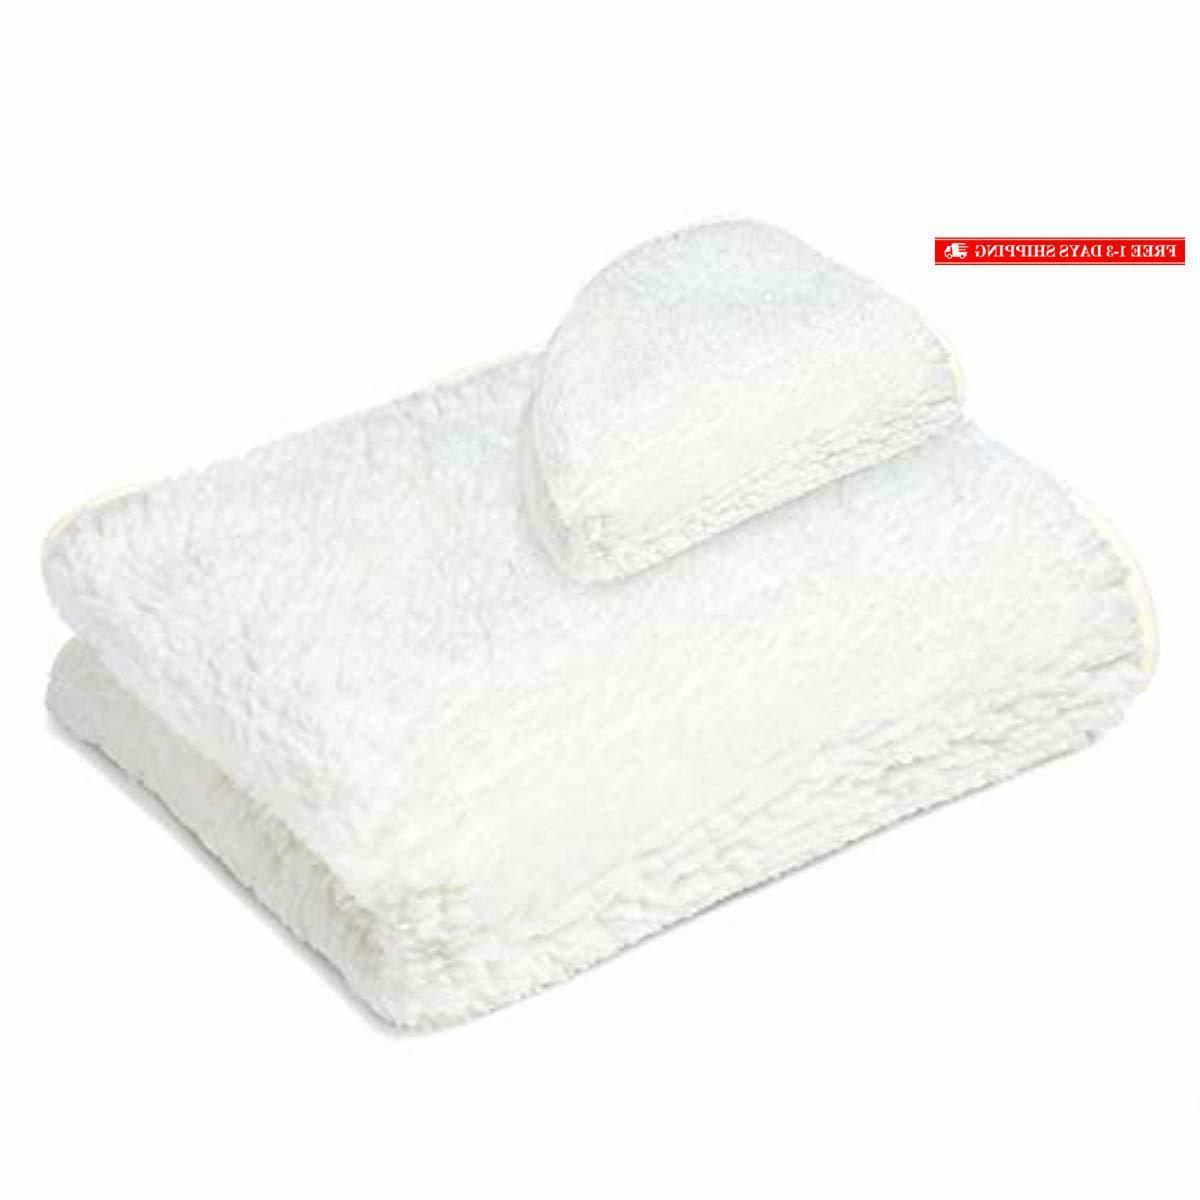 Saloniture Fleece Pad Face - 1/2